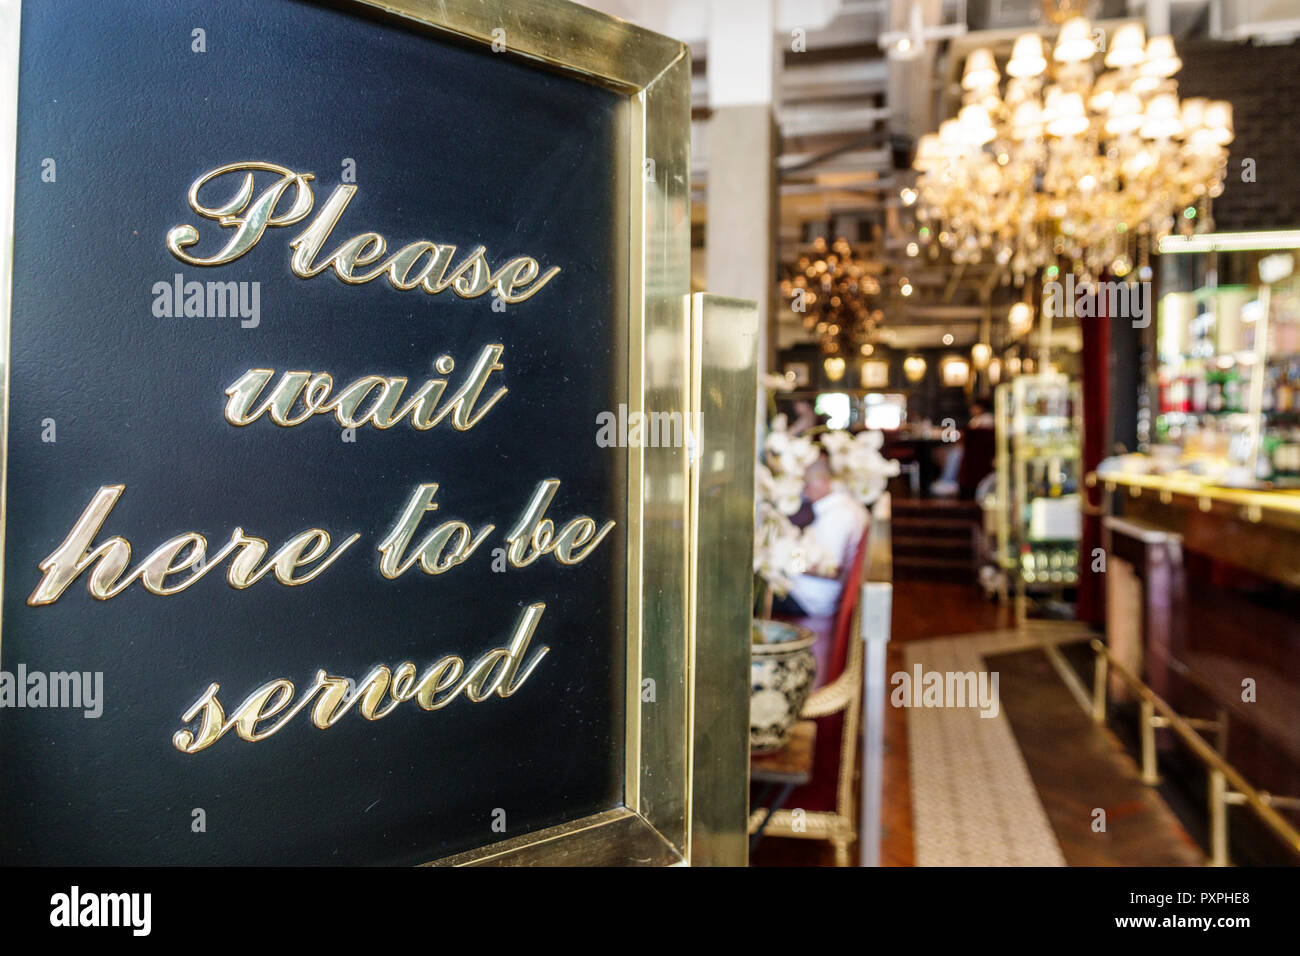 London England United Kingdom Great Britain Piccadilly Mayfair Caffe Concerto Piccadilly restaurant Italian entrance host sign wait to be served - Stock Image